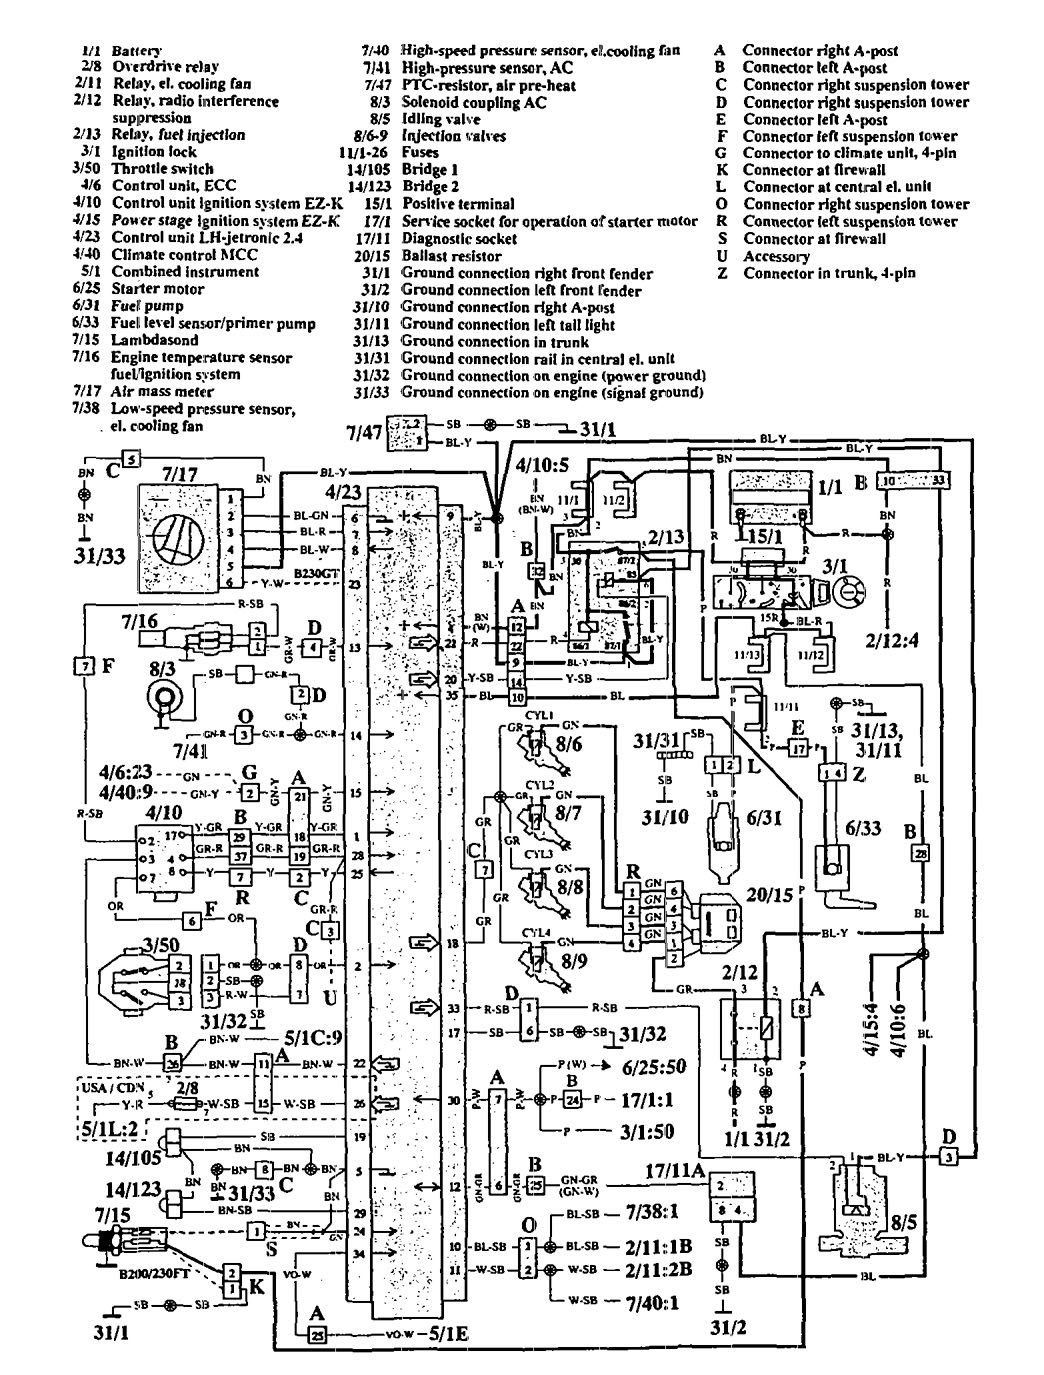 volvo 940 wiring diagram fuel controls v2 2 1992 hu 613 wiring diagram boat wiring diagram \u2022 wiring diagrams j Owwm Woodworking at panicattacktreatment.co